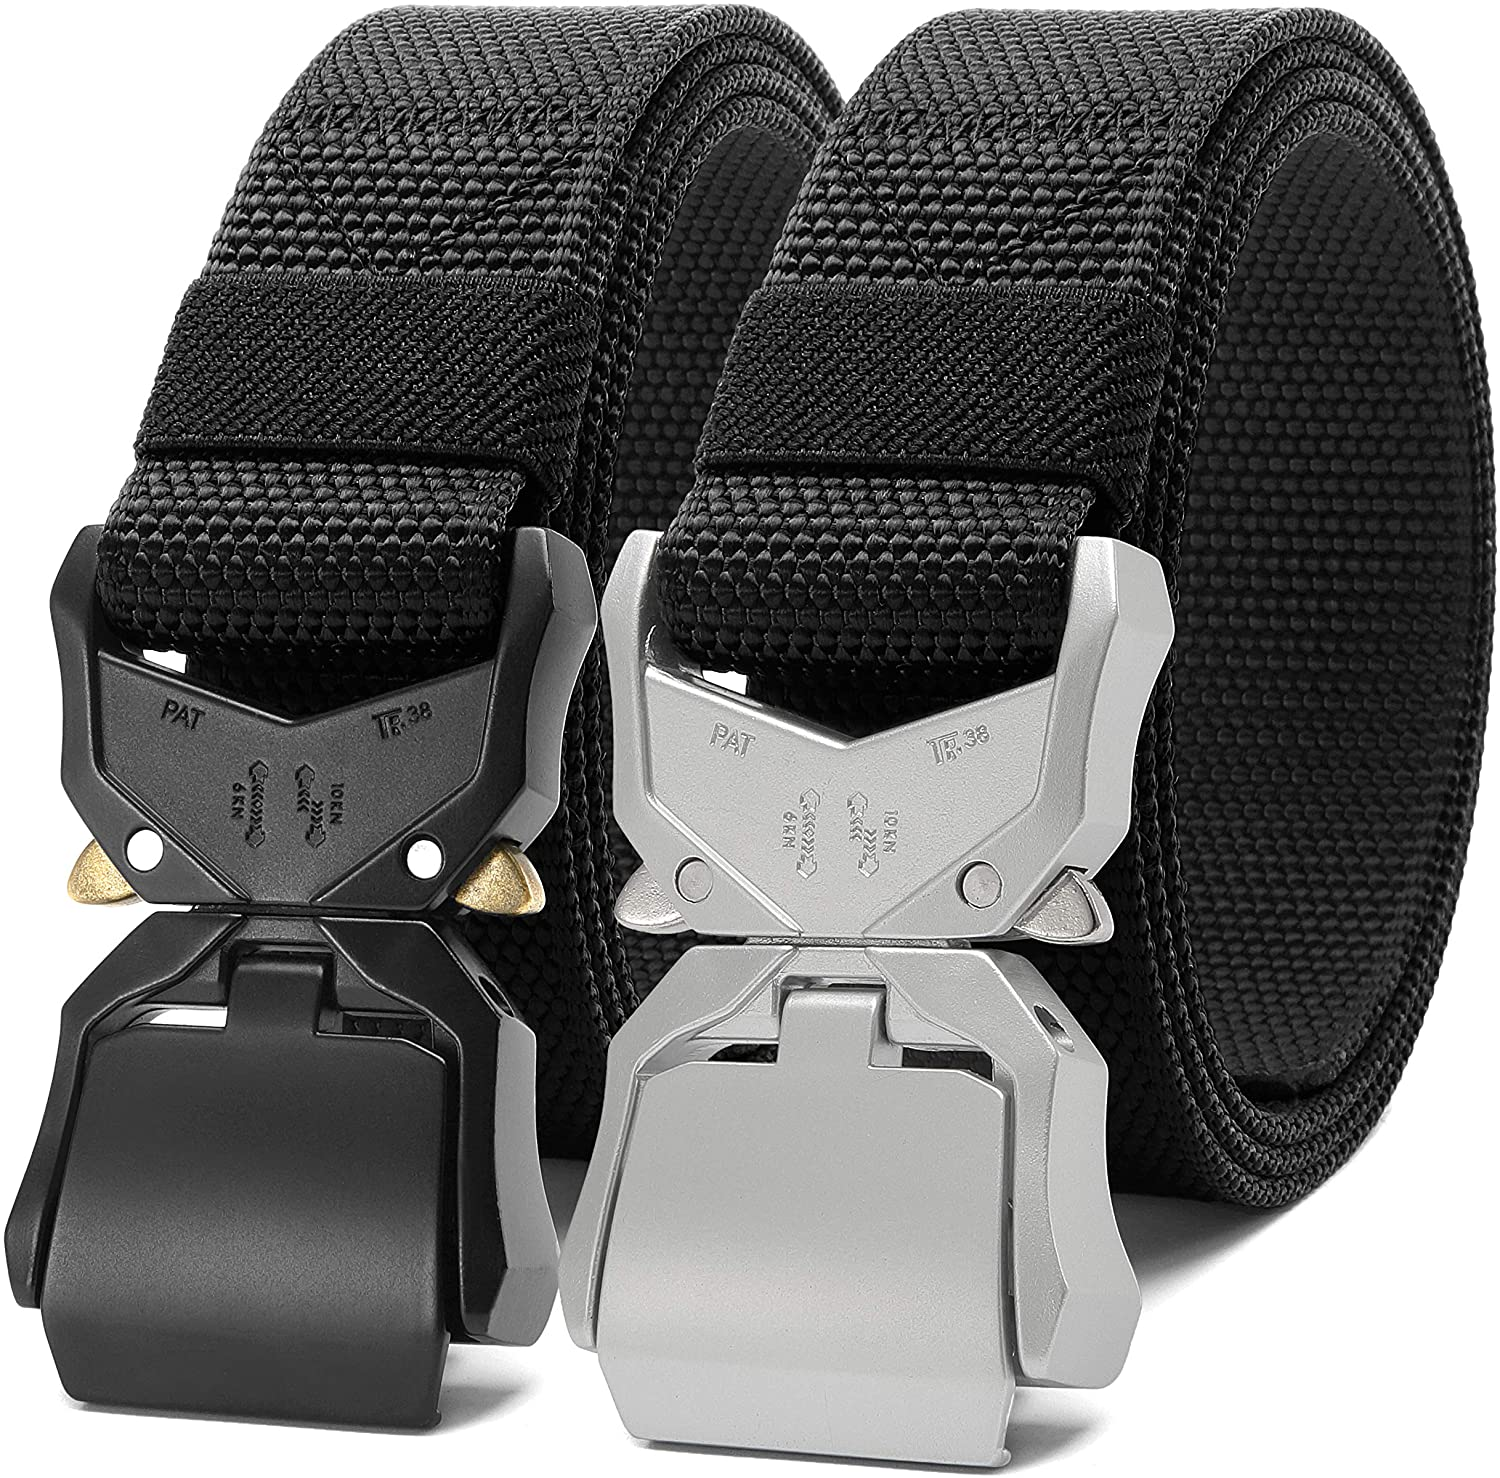 Mens Tactical belt 2 Pack 1.5 Inch, Fashon Military Style Riggers Web Belt for Men with Heavy-Duty Quick-Release Buckle